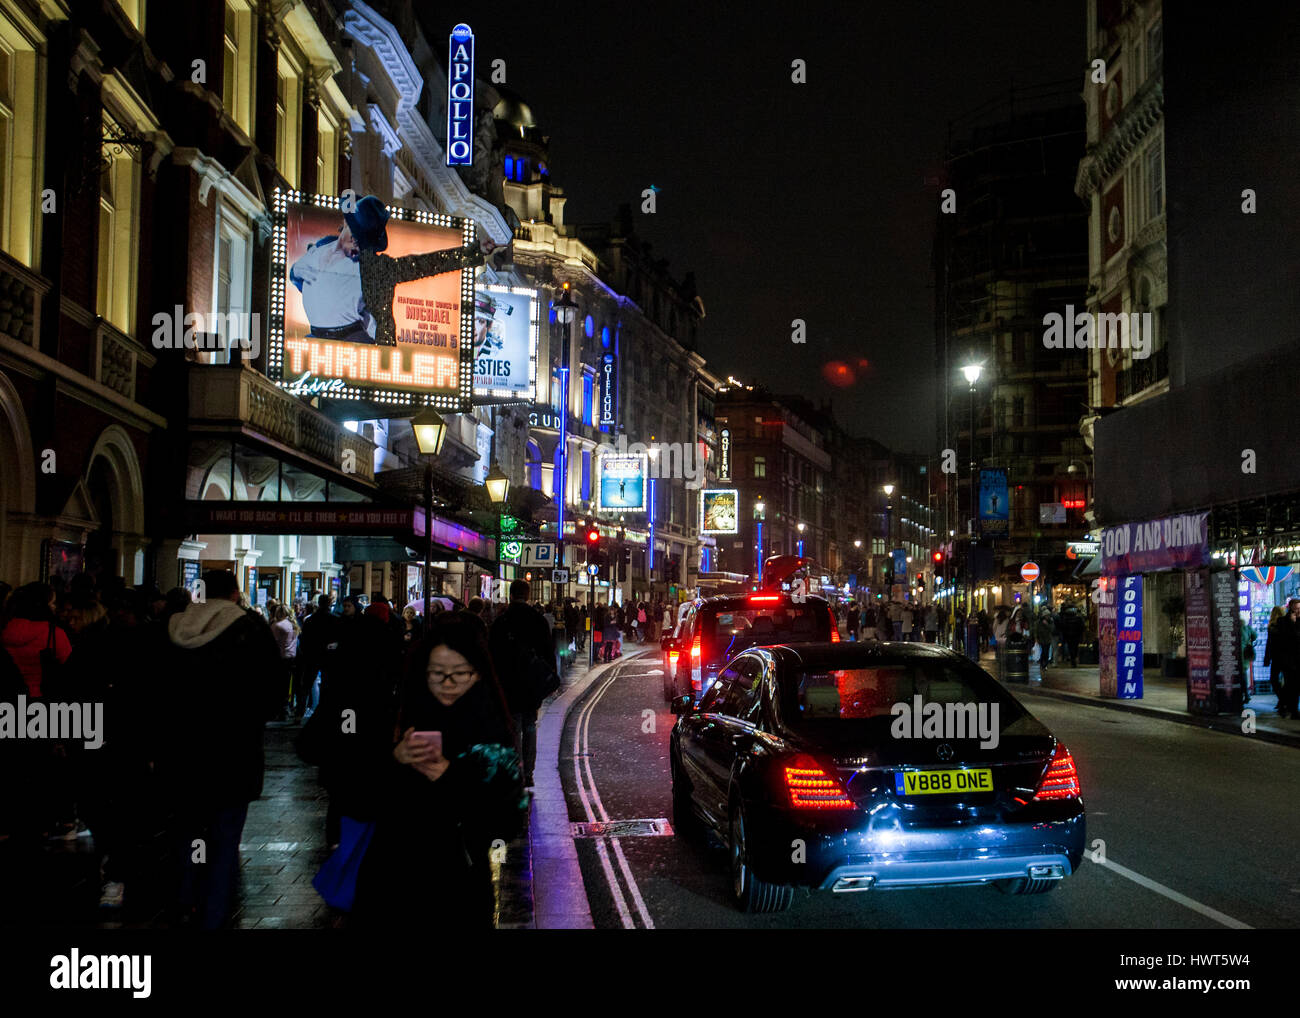 Theatres in Shaftesbury Avenue London busy street scene night - Stock Image